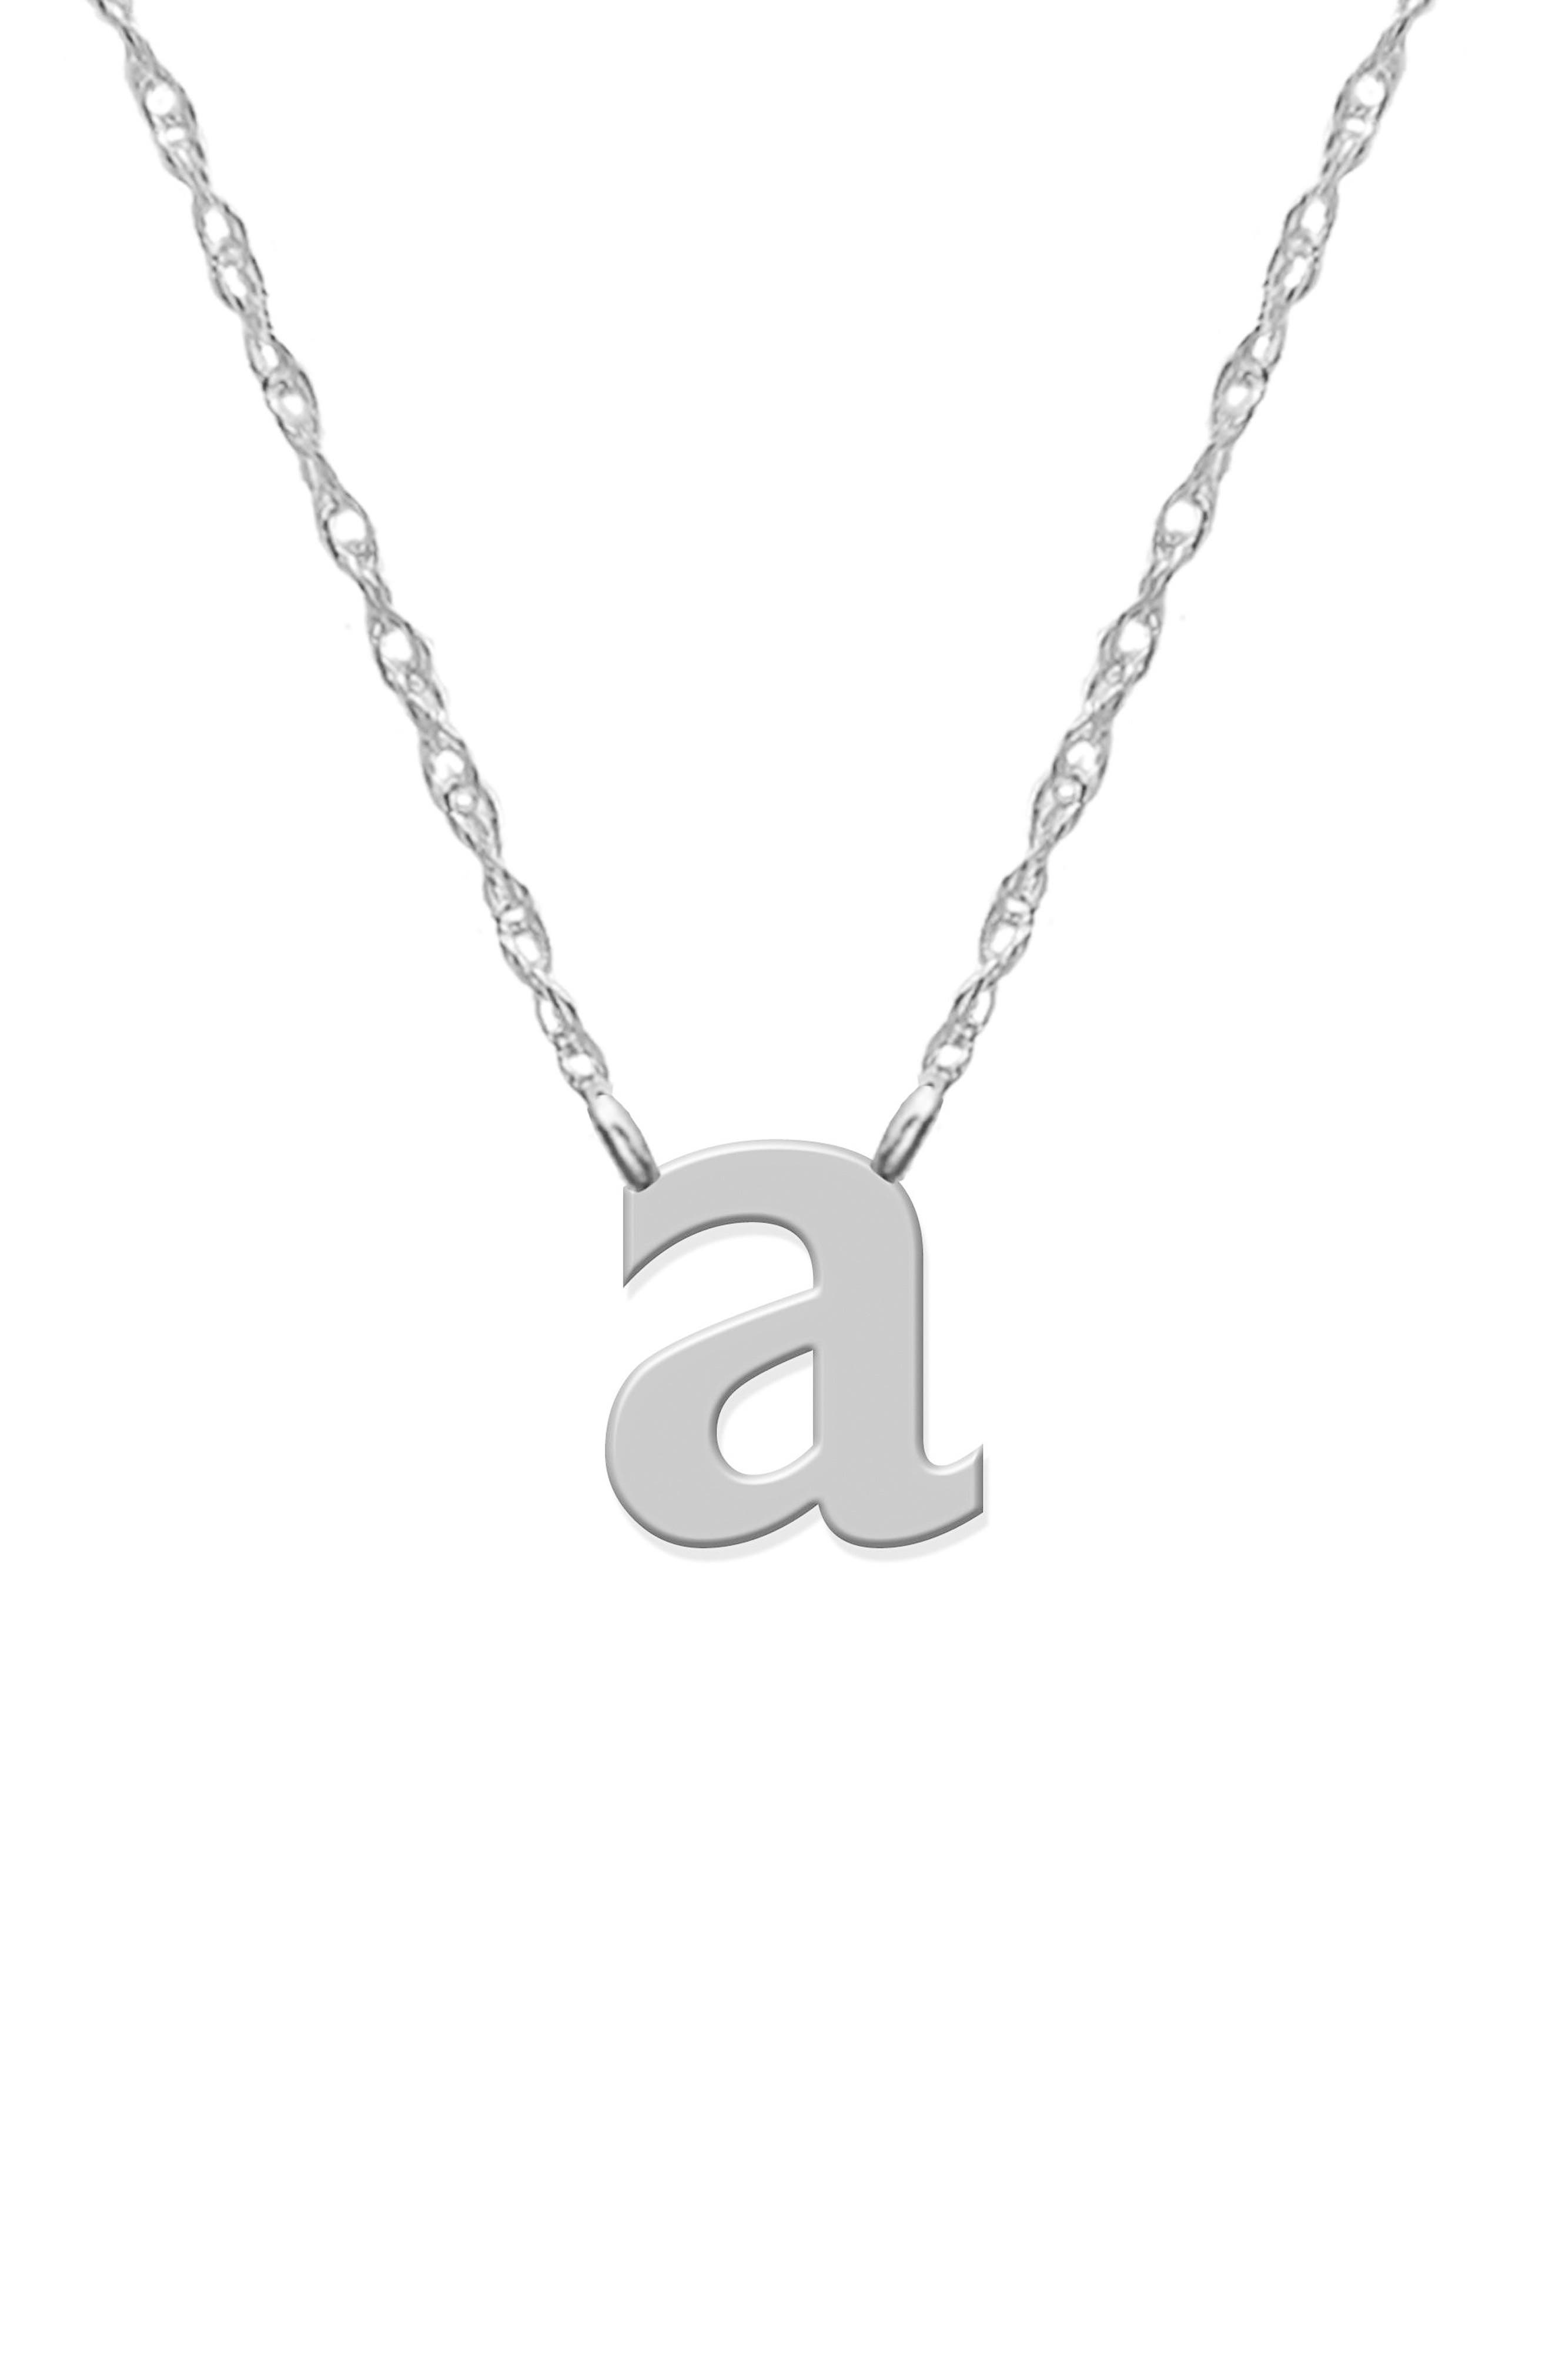 Main Image - Jane Basch Designs Initial Pendant Necklace